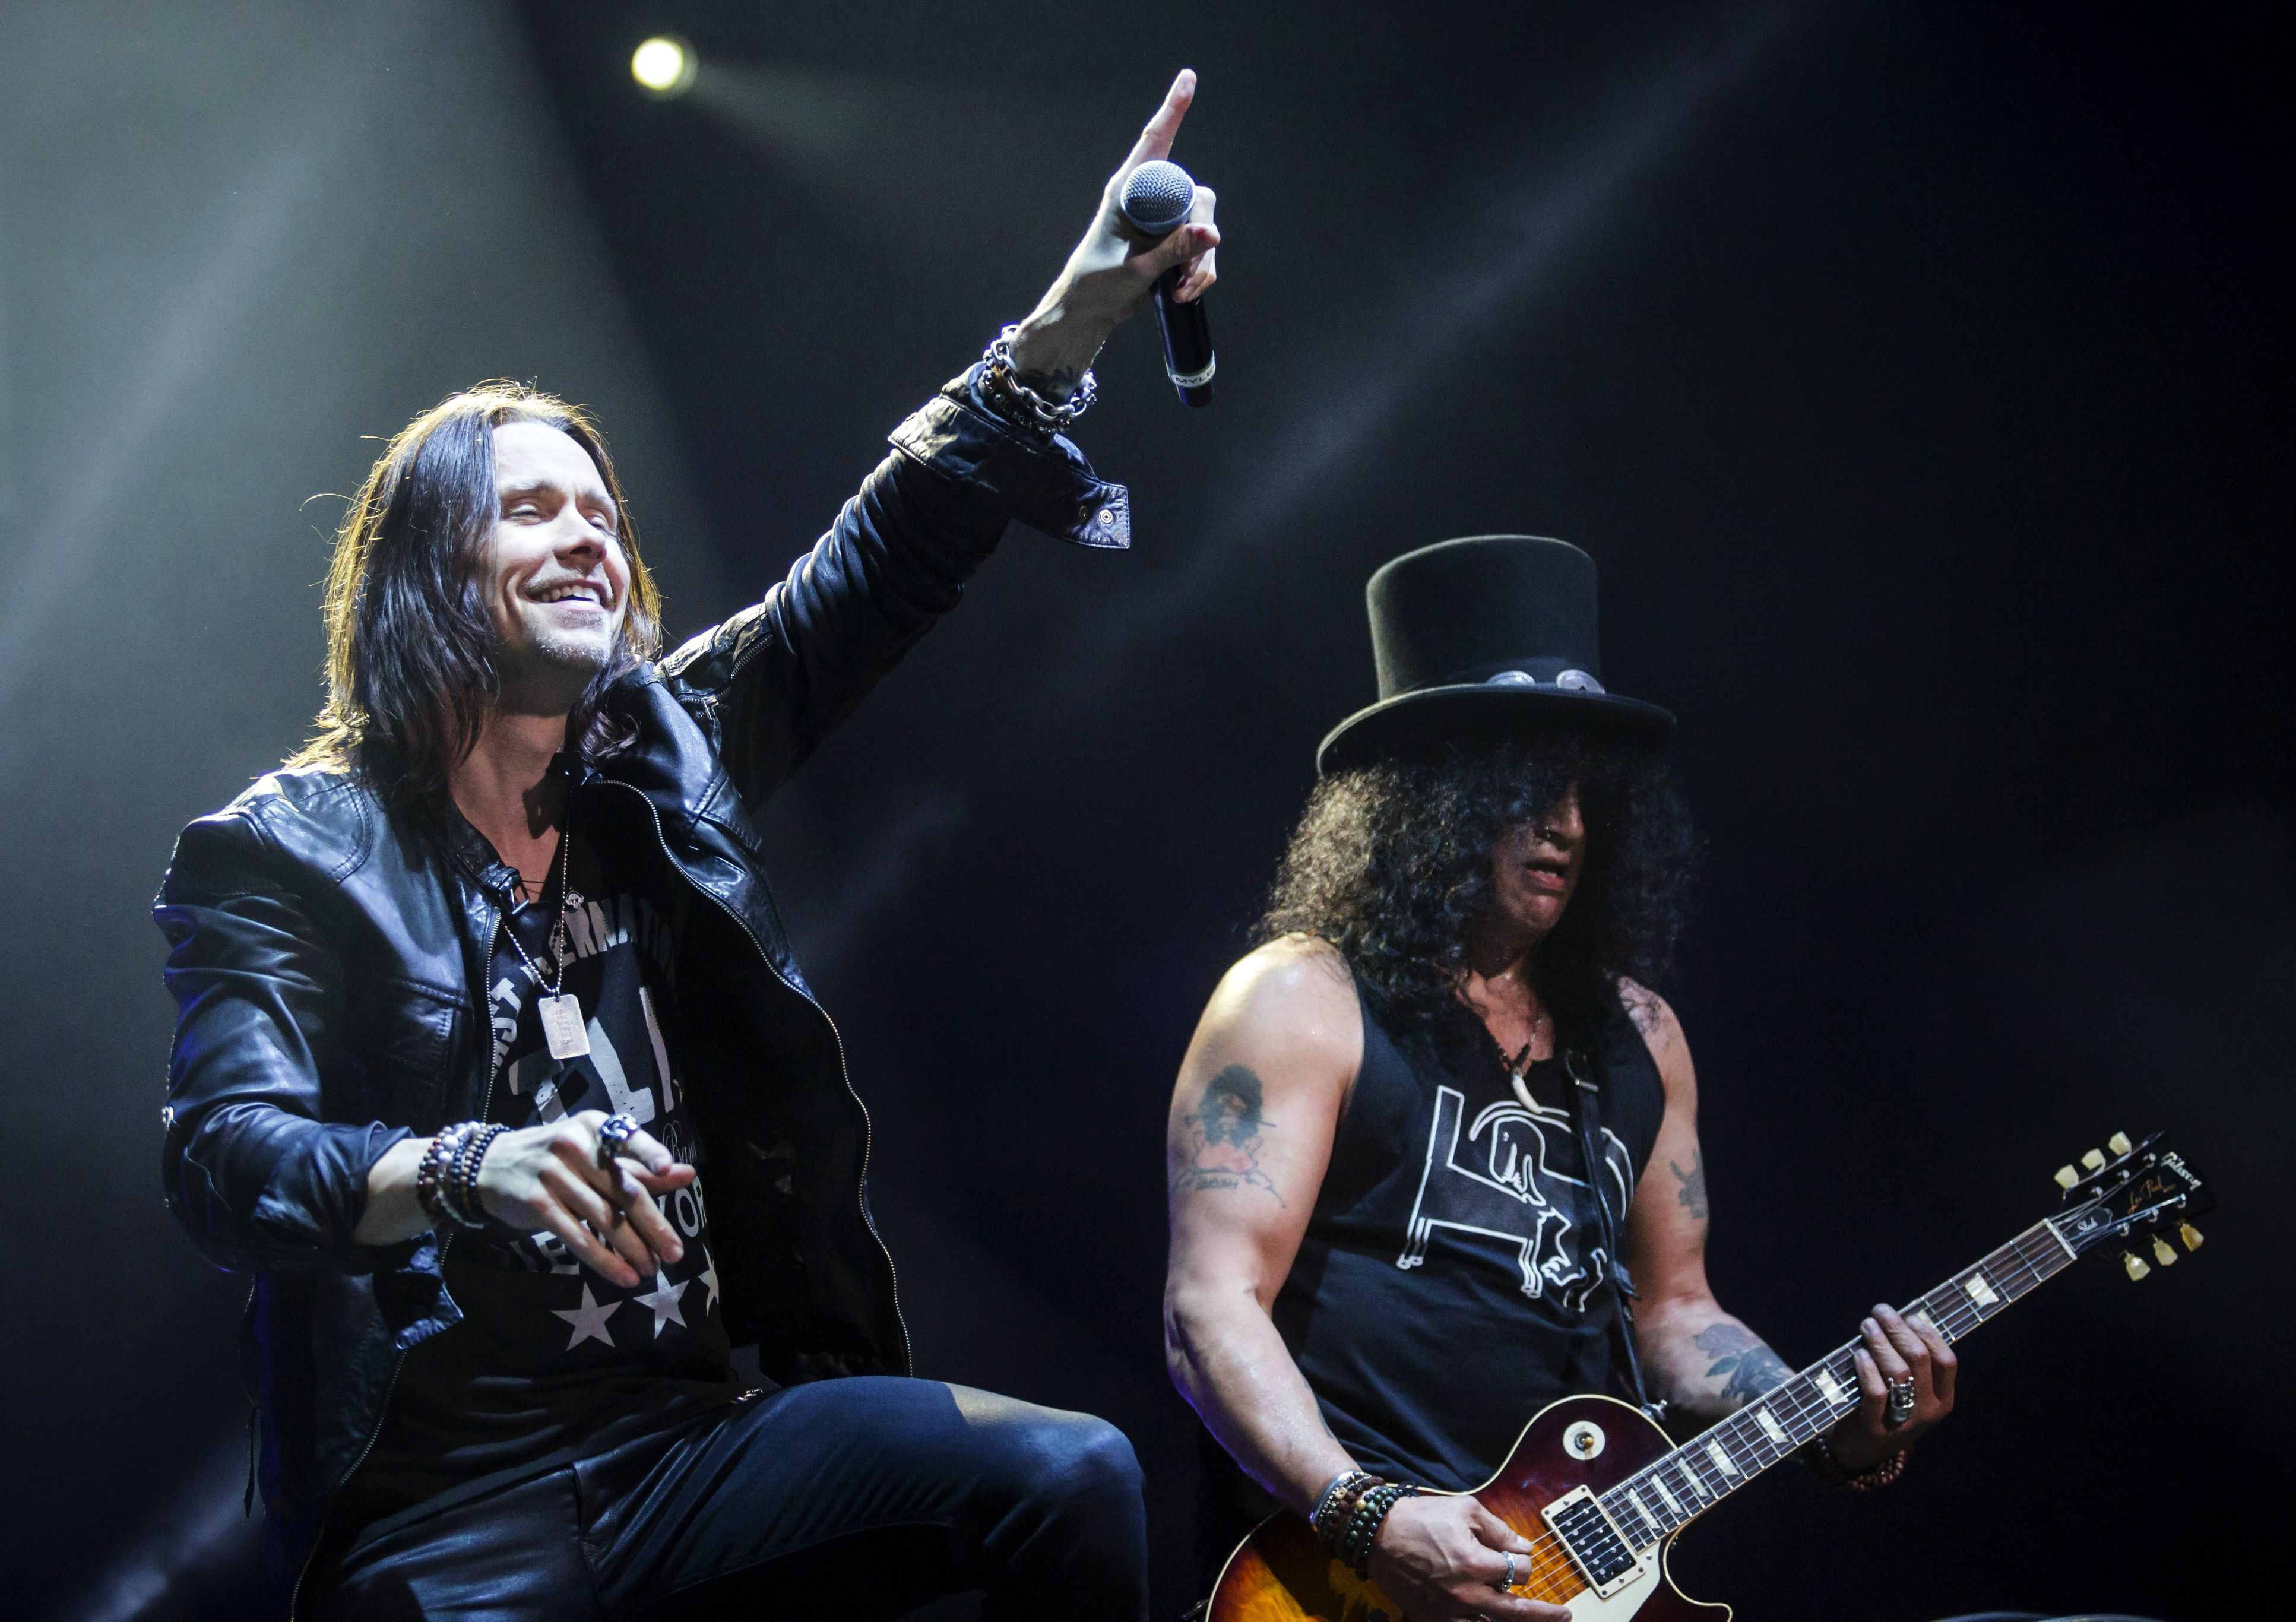 HUNGARY OUTMandatory Credit: Photo by Balazs Mohai/Epa/REX/Shutterstock (8307539c) A Photograph Made Avaiable on 19 November 2015 Showing Us Singer Myles Kennedy (l) and British - Us Guitarist Saul Hudson Aka Slash Performing During the Concert of Slash and Myles Kennedy & the Conspirators in Papp Laszlo Sports Arena in Budapest Hungary 18 November 2015 Hungary Budapest Hungary Music - Nov 2015